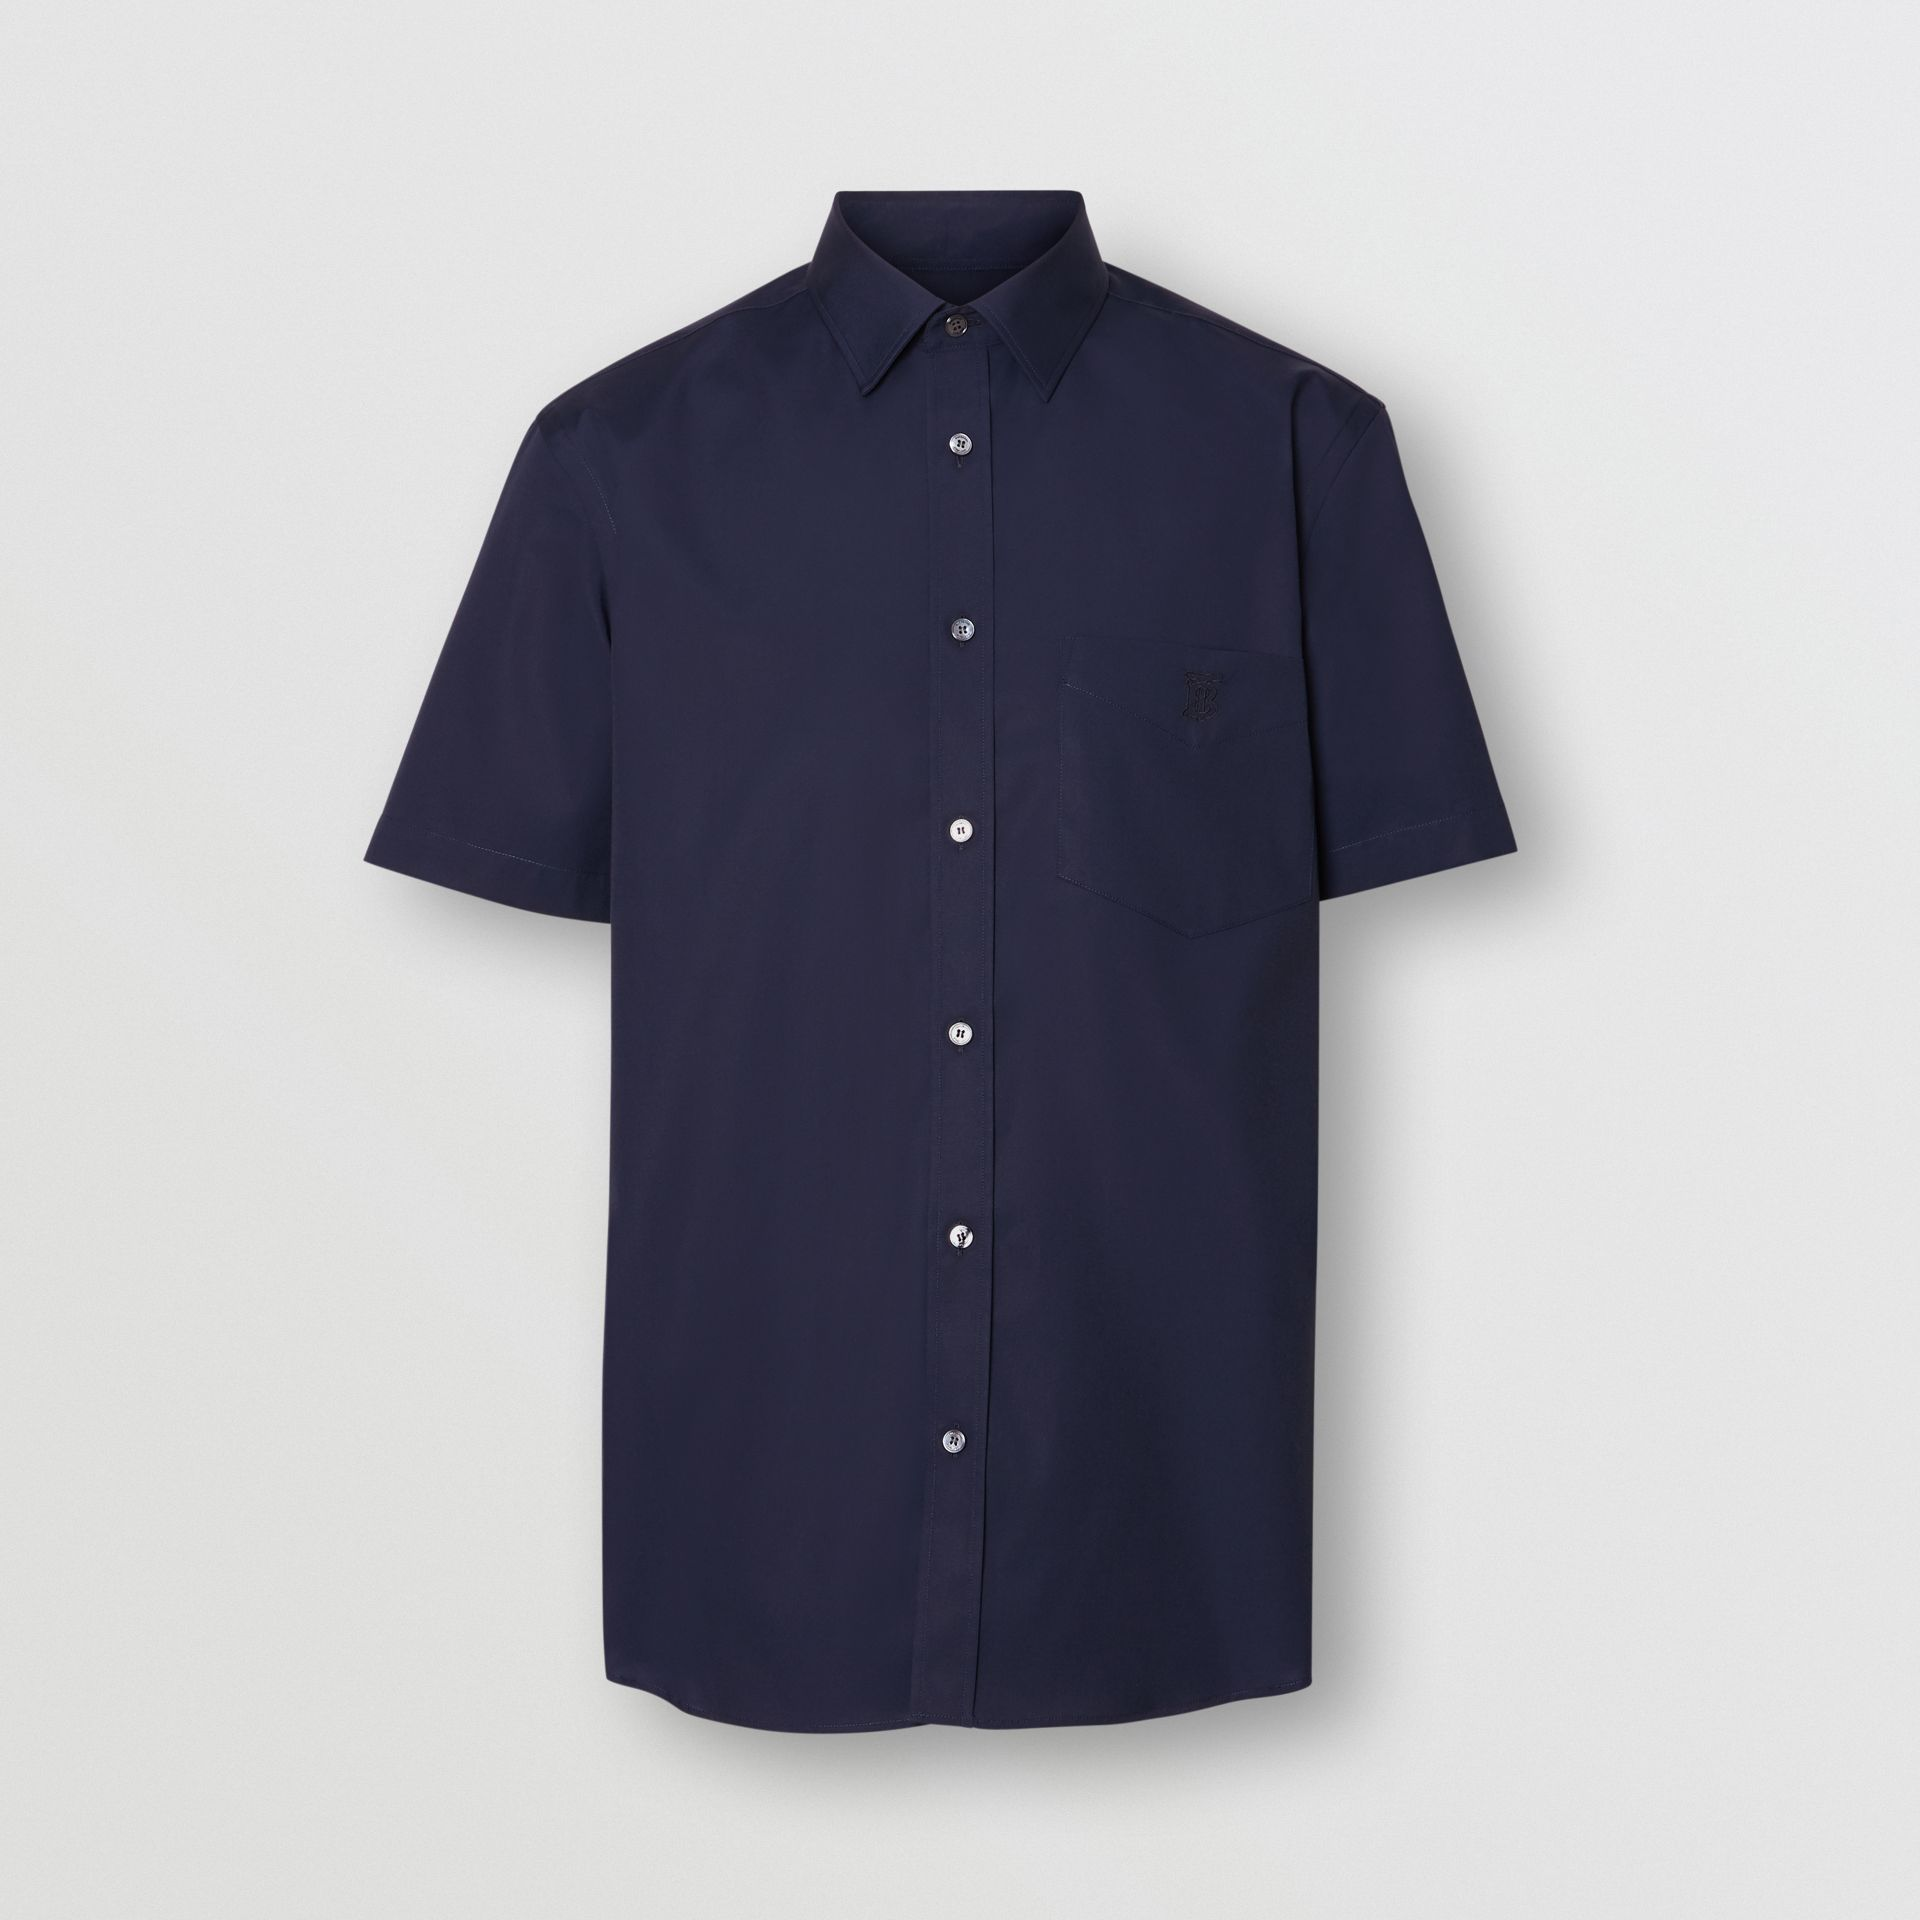 Short-sleeve Monogram Motif Stretch Cotton Shirt in Navy - Men | Burberry - gallery image 3